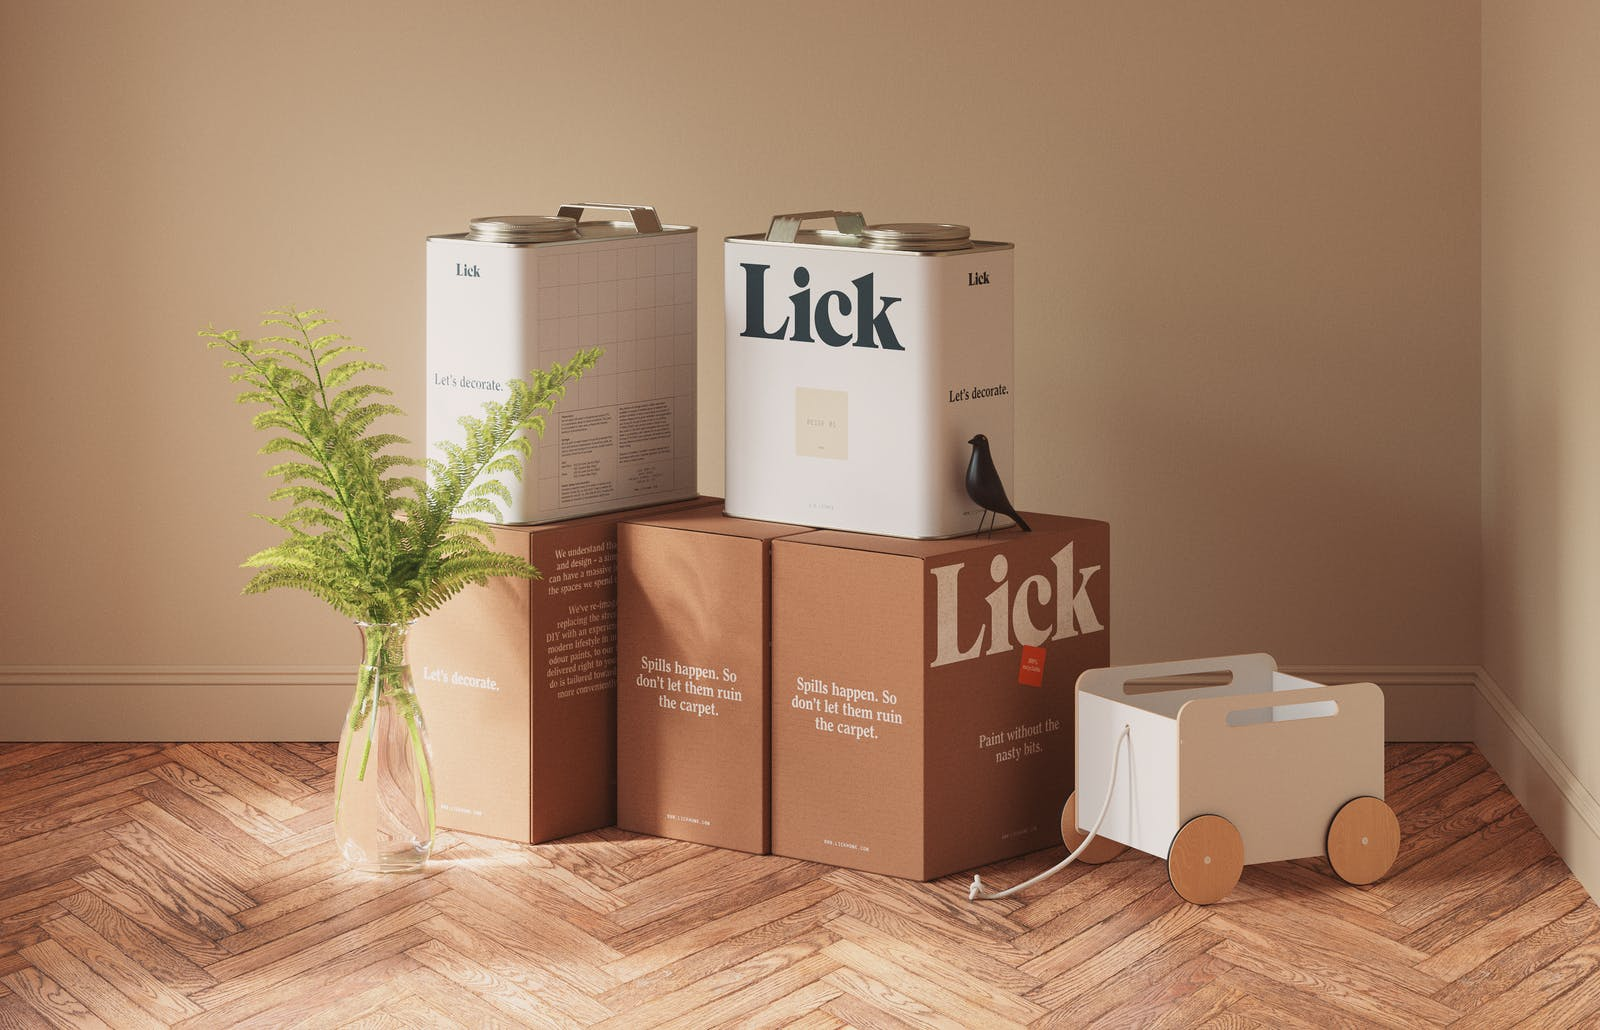 Lick tins and lick branded packaging boxes on floor